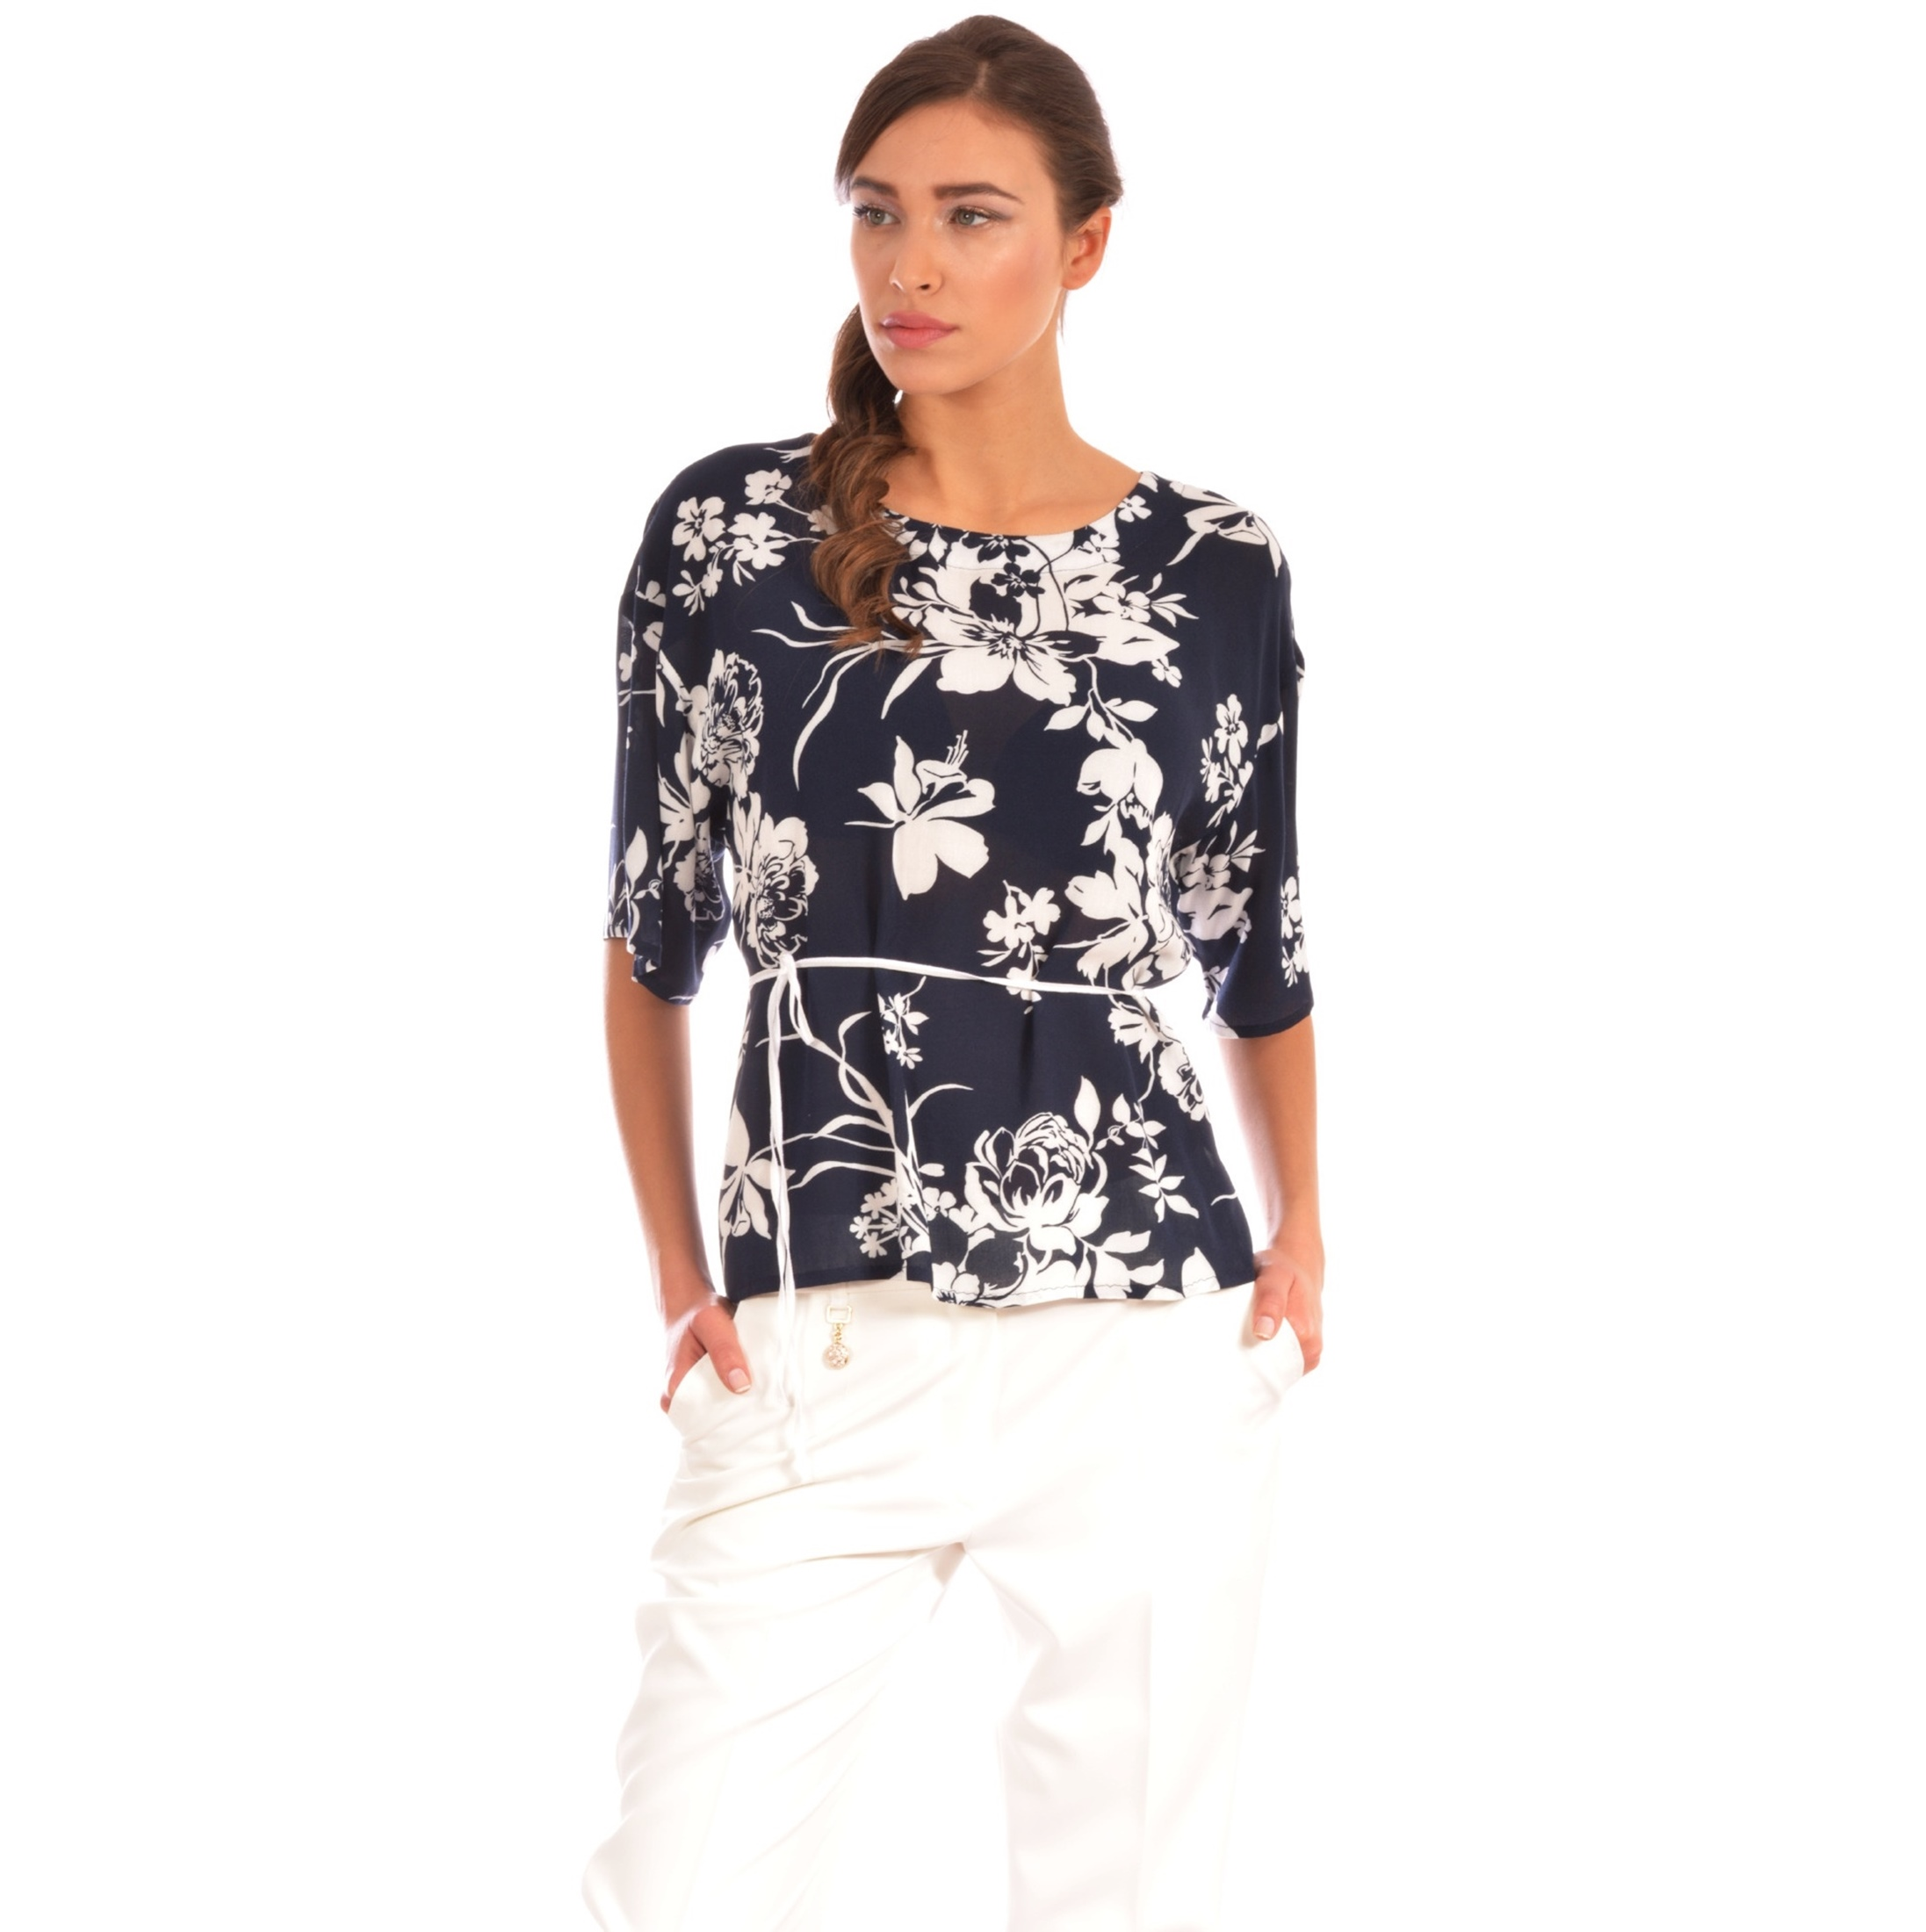 lady m blue women's top, ženski plavi top lady m